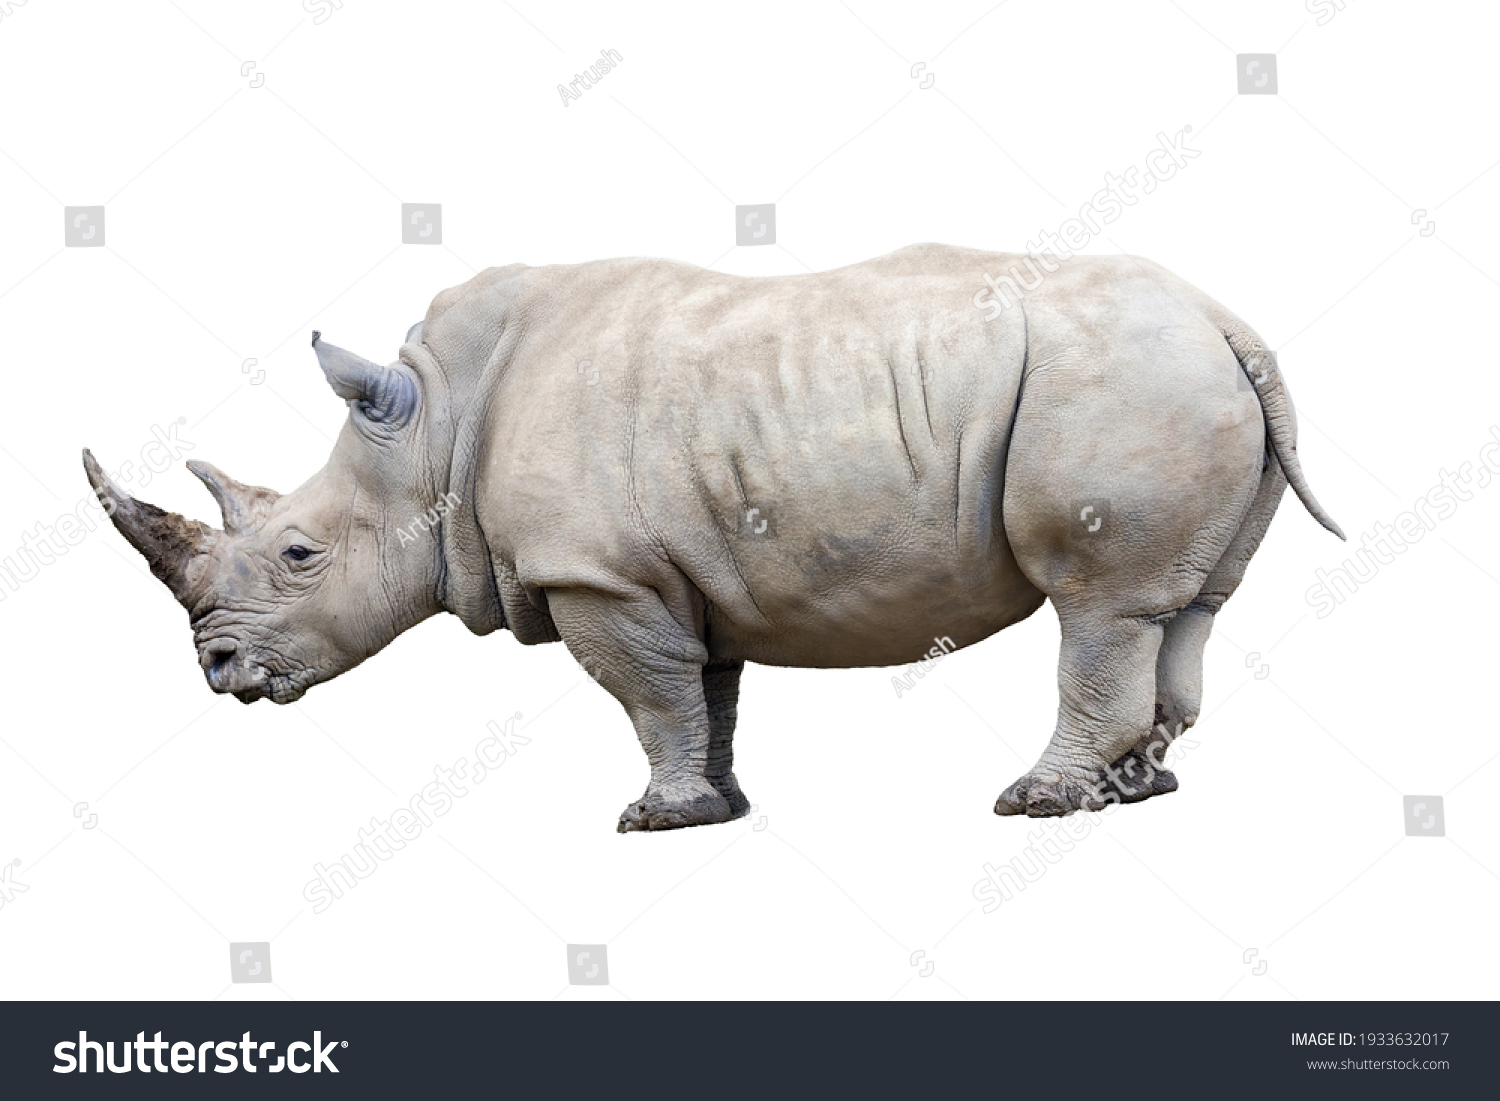 Rhino rhinoceros standing side view isolated on white background. #1933632017